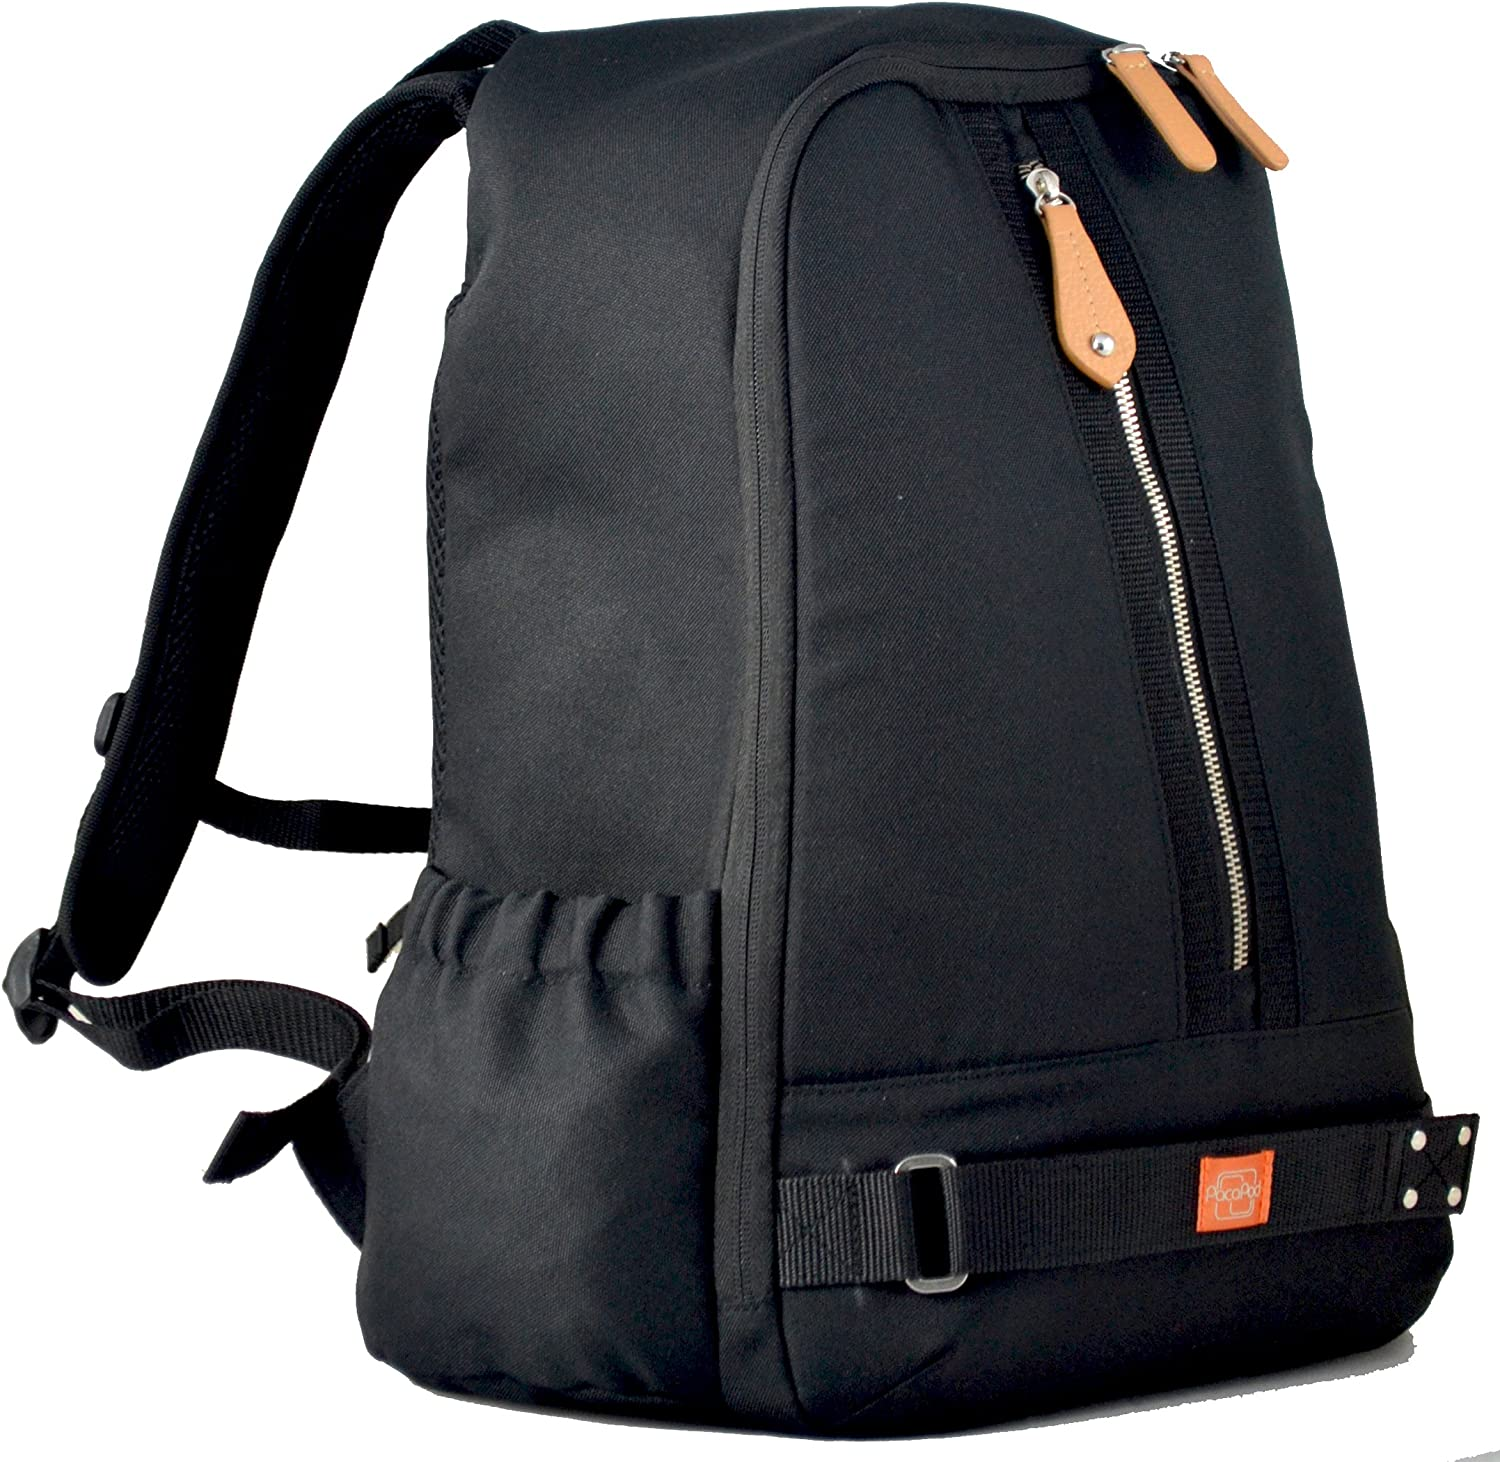 PacaPod Picos Pack Black Shell Designer Baby Changing Bag Unisex Luxury Black Backpack Outer Shell